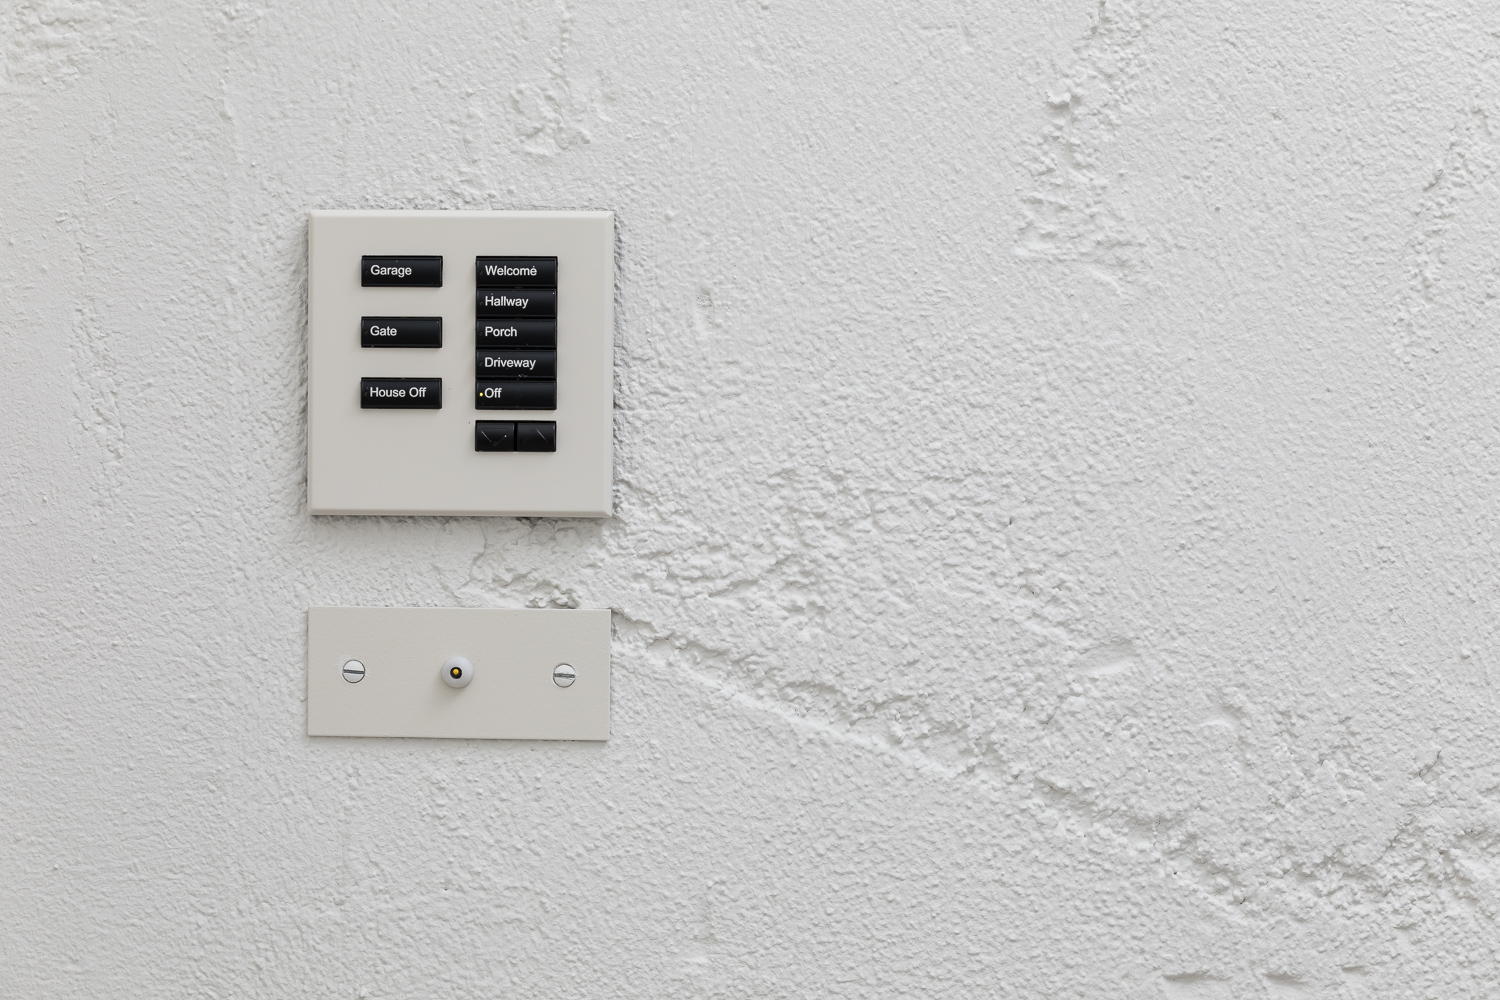 Automated Smart Home - Custom Keypads and Thermostat Probes